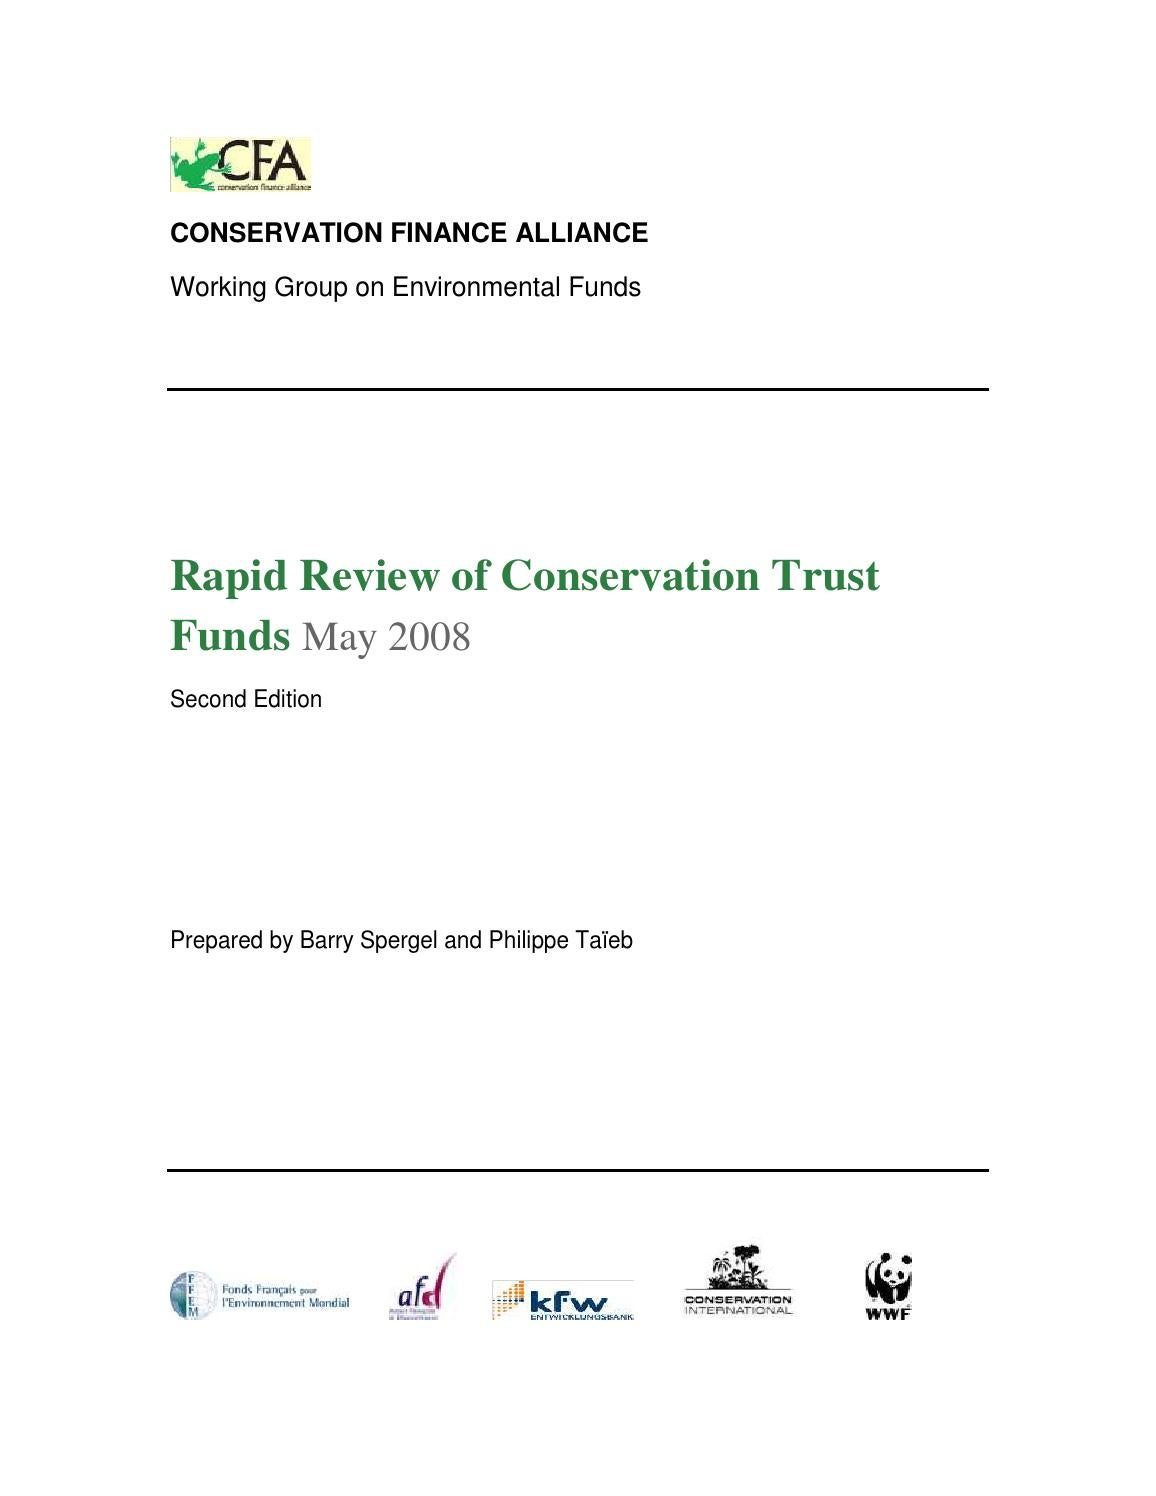 Conservation Trust Fund Executive Summary 2008 By Agence